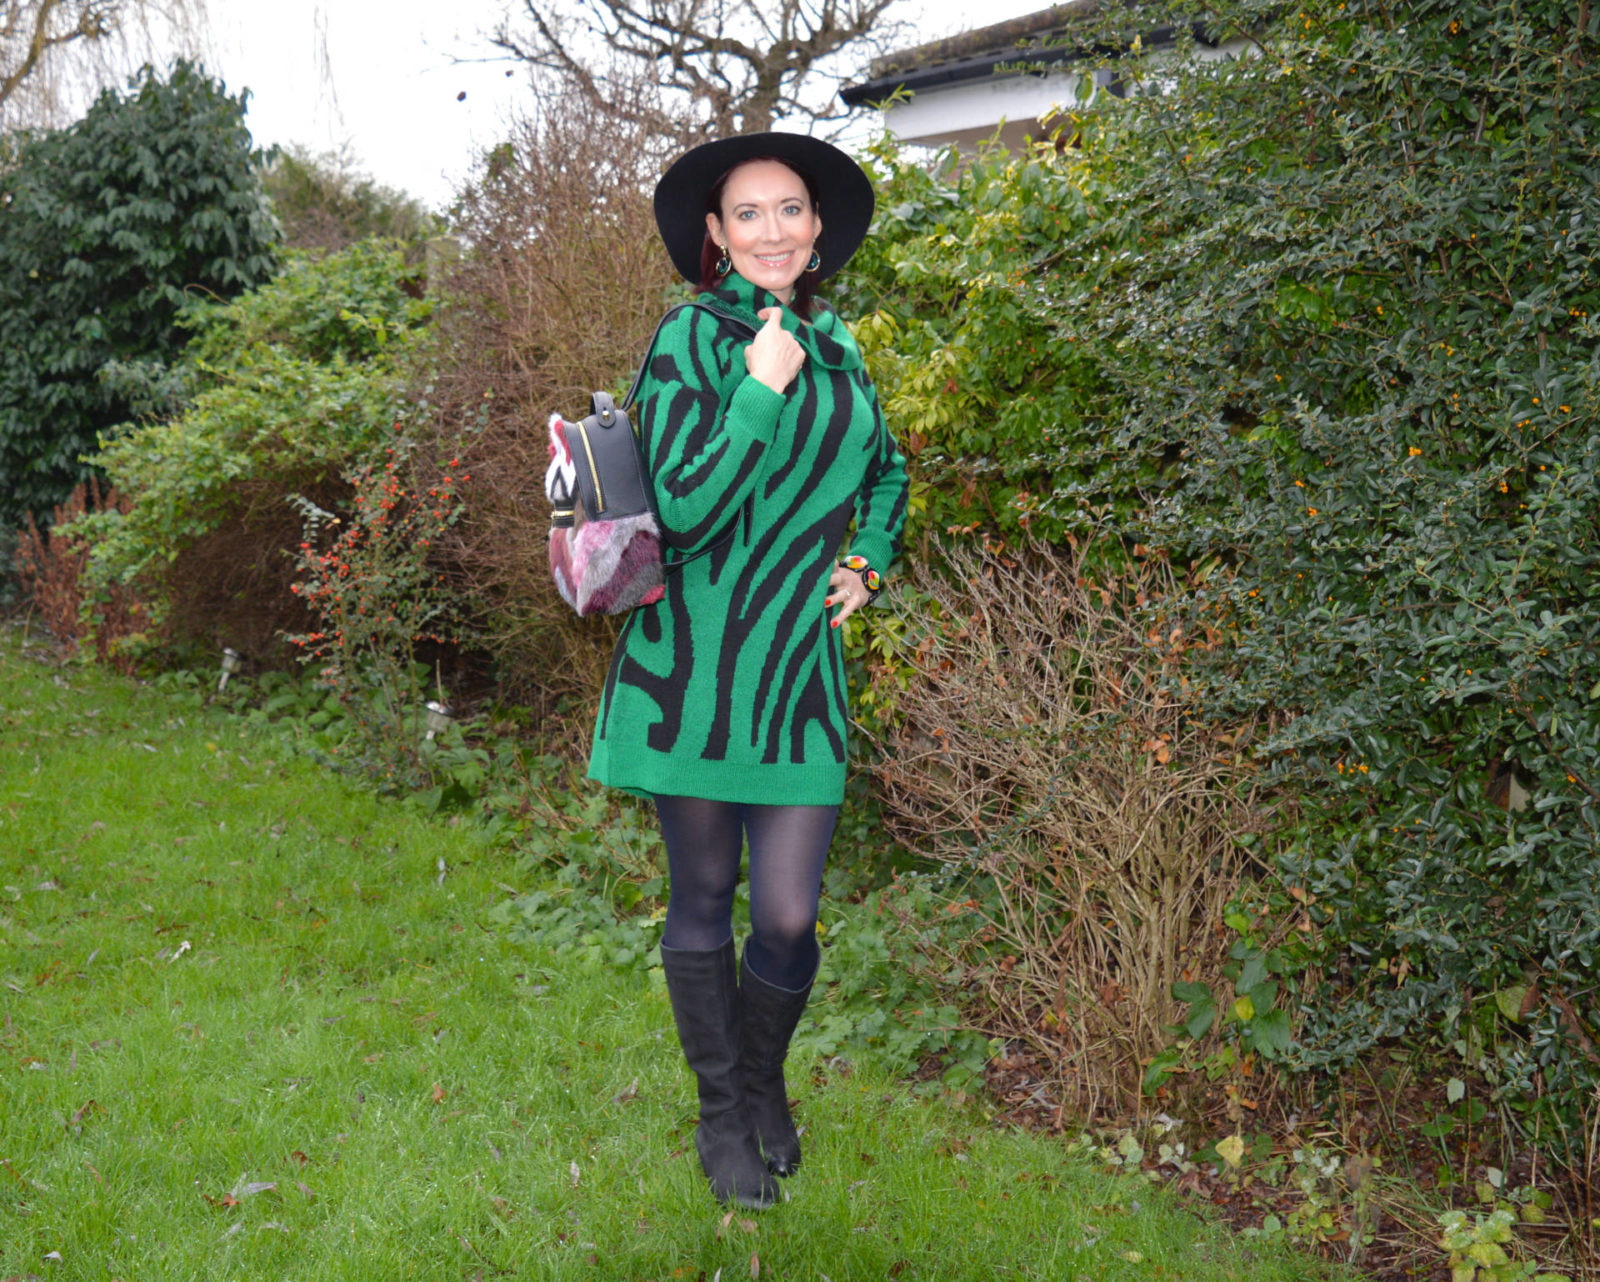 Bonmarche Green zebra print tunic jumper, faux fur backpack